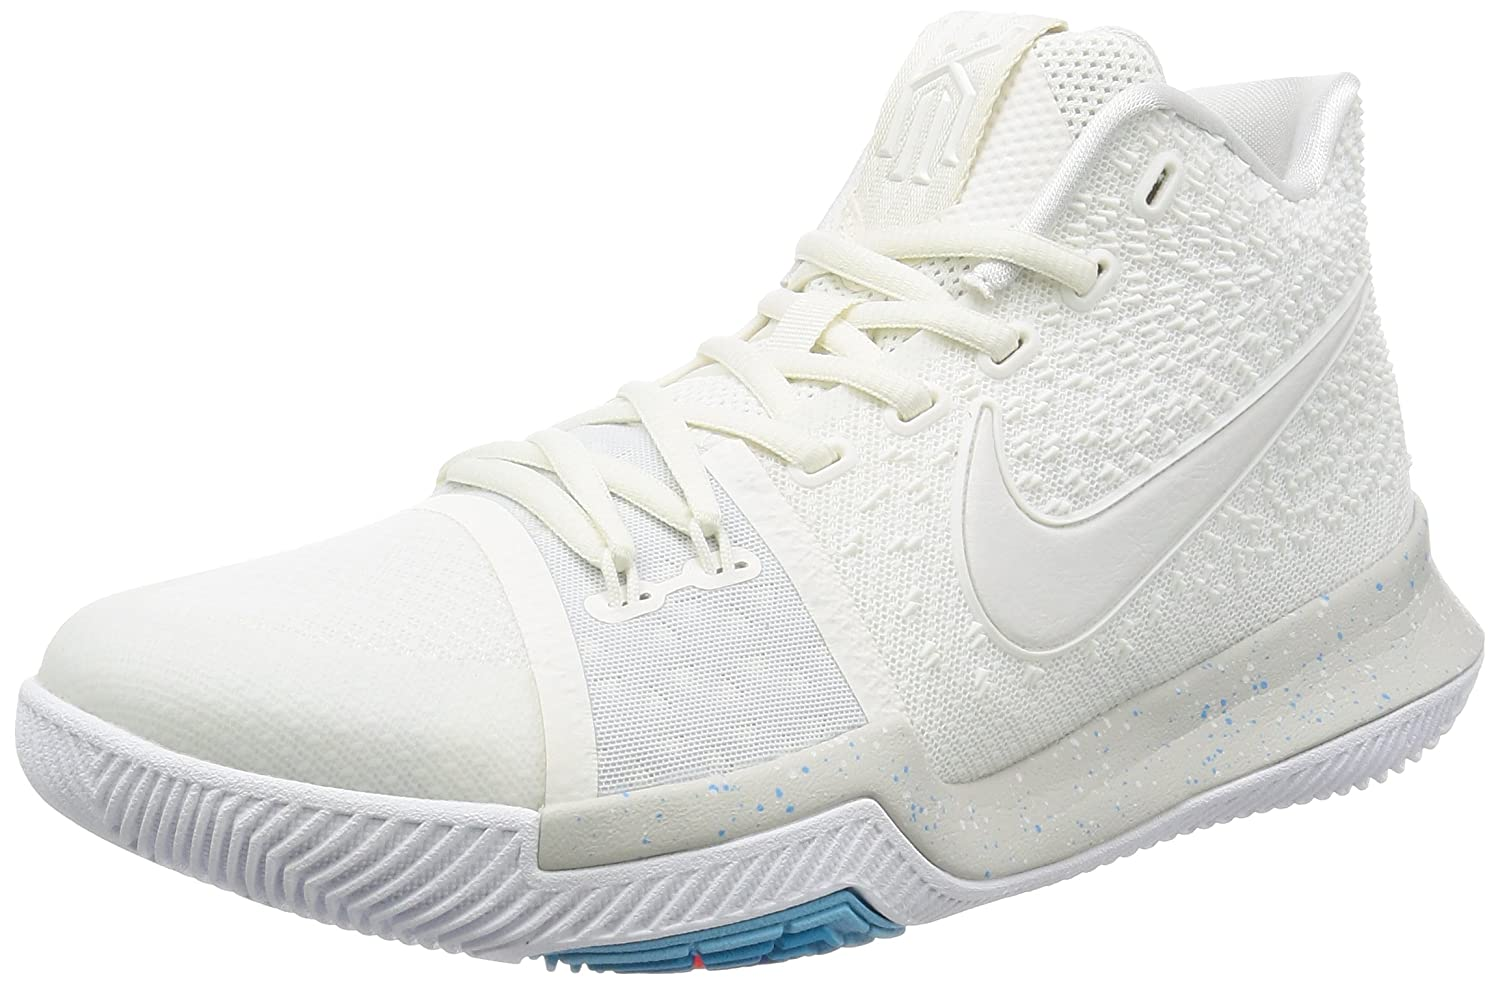 premium selection e976c 140fe Nike Men's Kyrie 3 Ivory/Pale/Grey/Light/Bone Basketball Shoe (10.5)